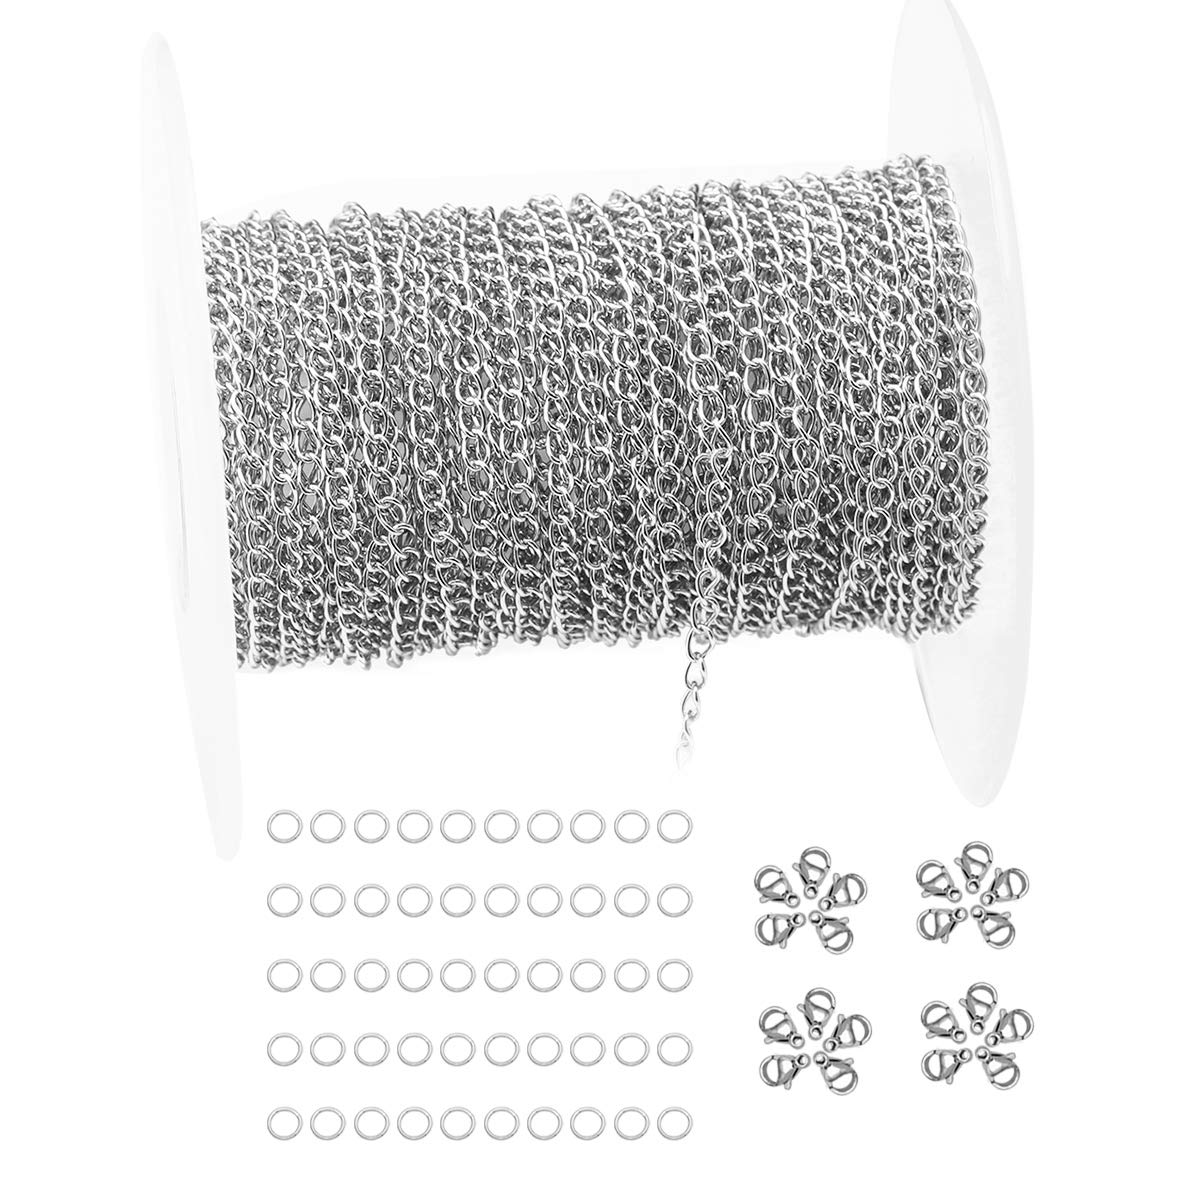 Tiparts 33FT Silver Cable Chains Stainless Steel Extender Chains Link Necklace Bulk for Jewelry Making with 20 Lobster Clasps and 50 Jump Rings Silver, 2mm